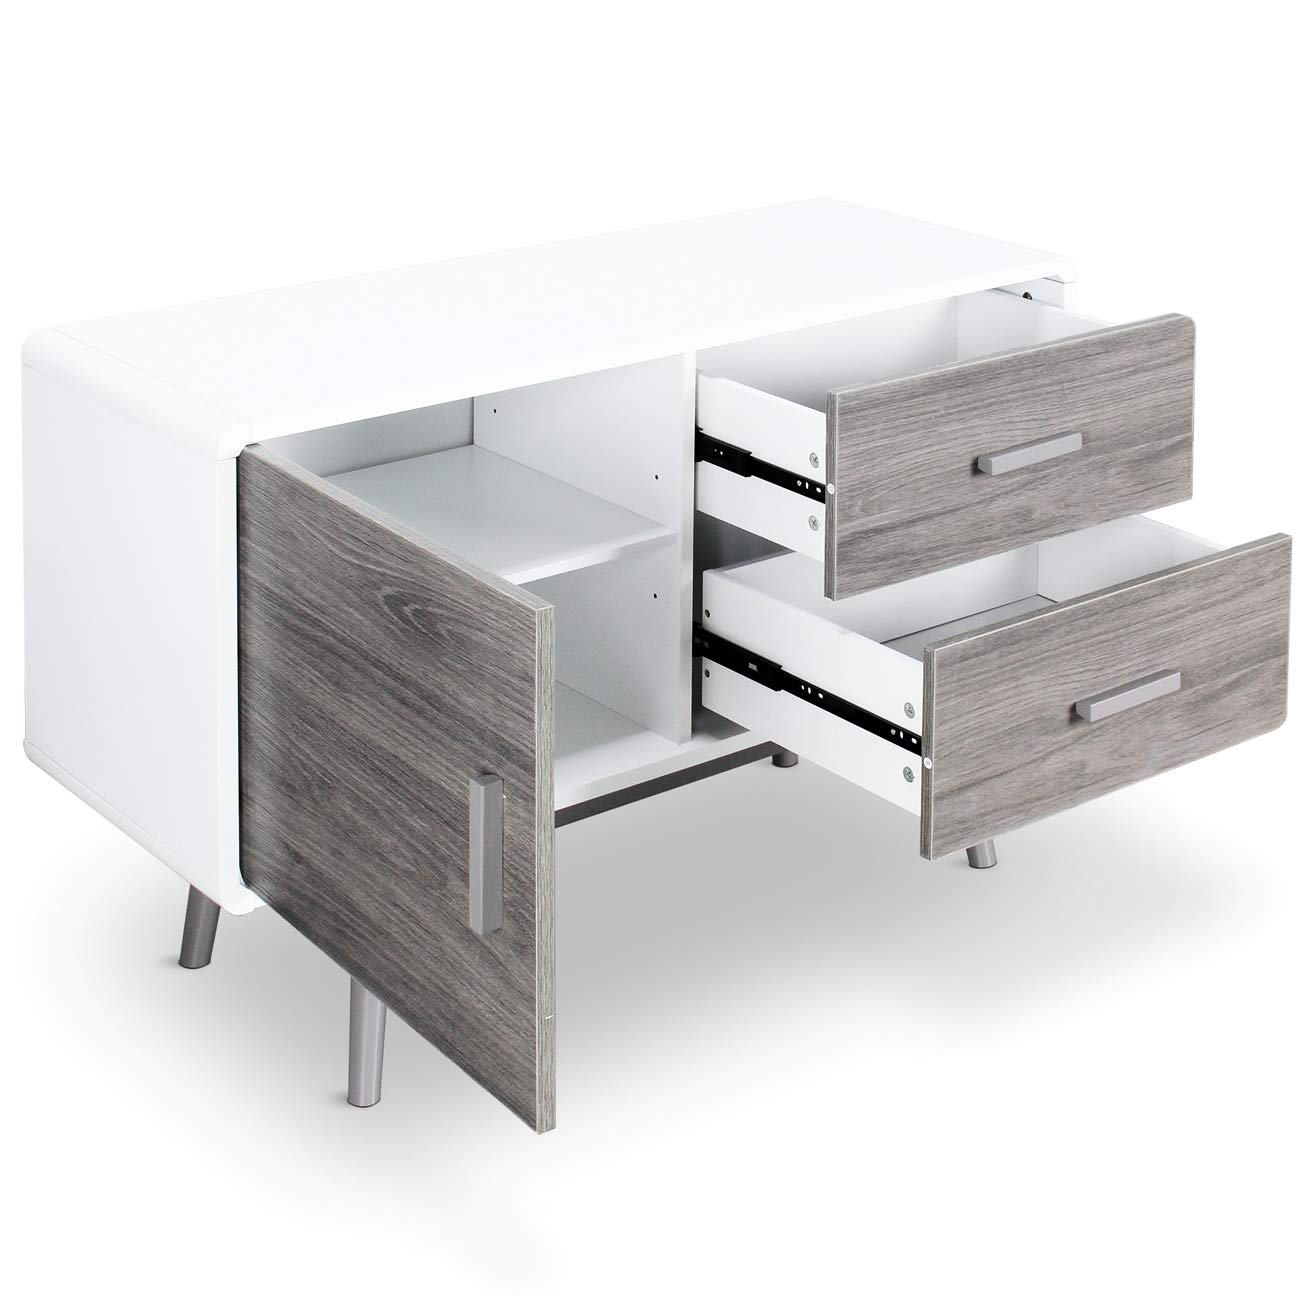 BELLEZE Contemporary Sideboard Buffet Table Cabinet with Wood Storage Console Table 2 Drawers & 1 Cabinet White by Belleze (Image #3)